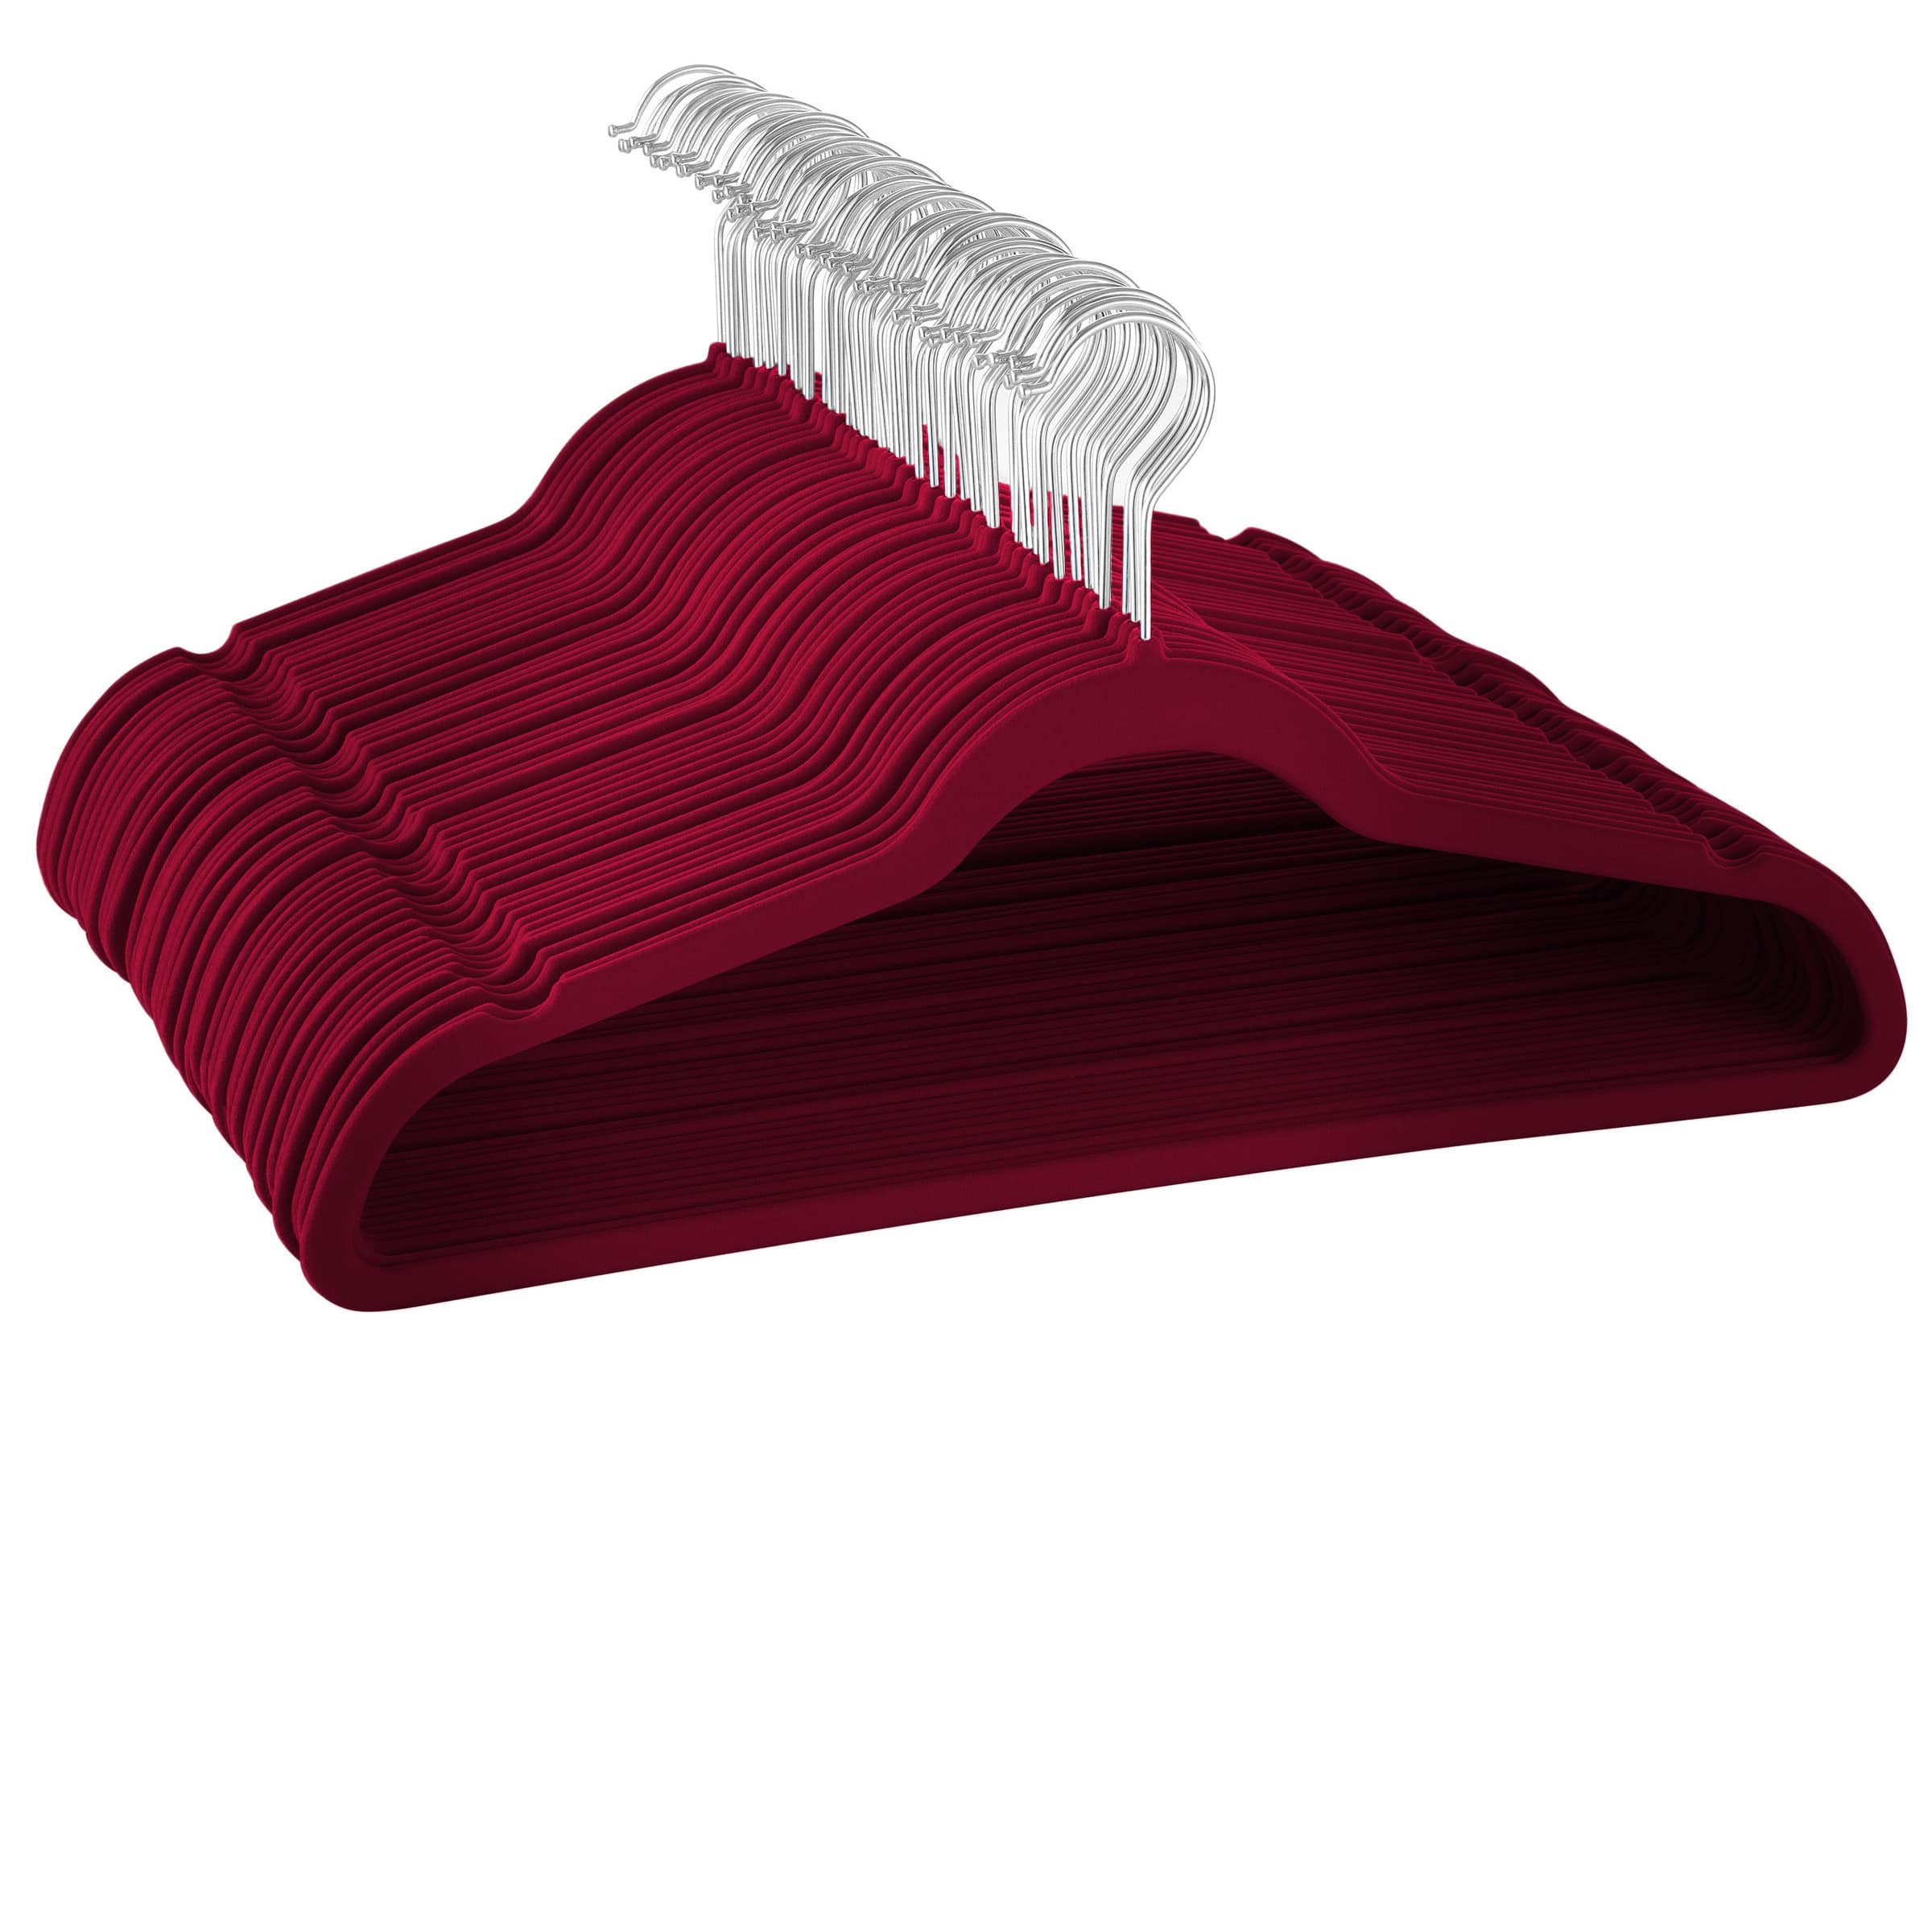 50 Pack Red / Burgundy Velvet Suit and Clothes Hangers For Just $9.67